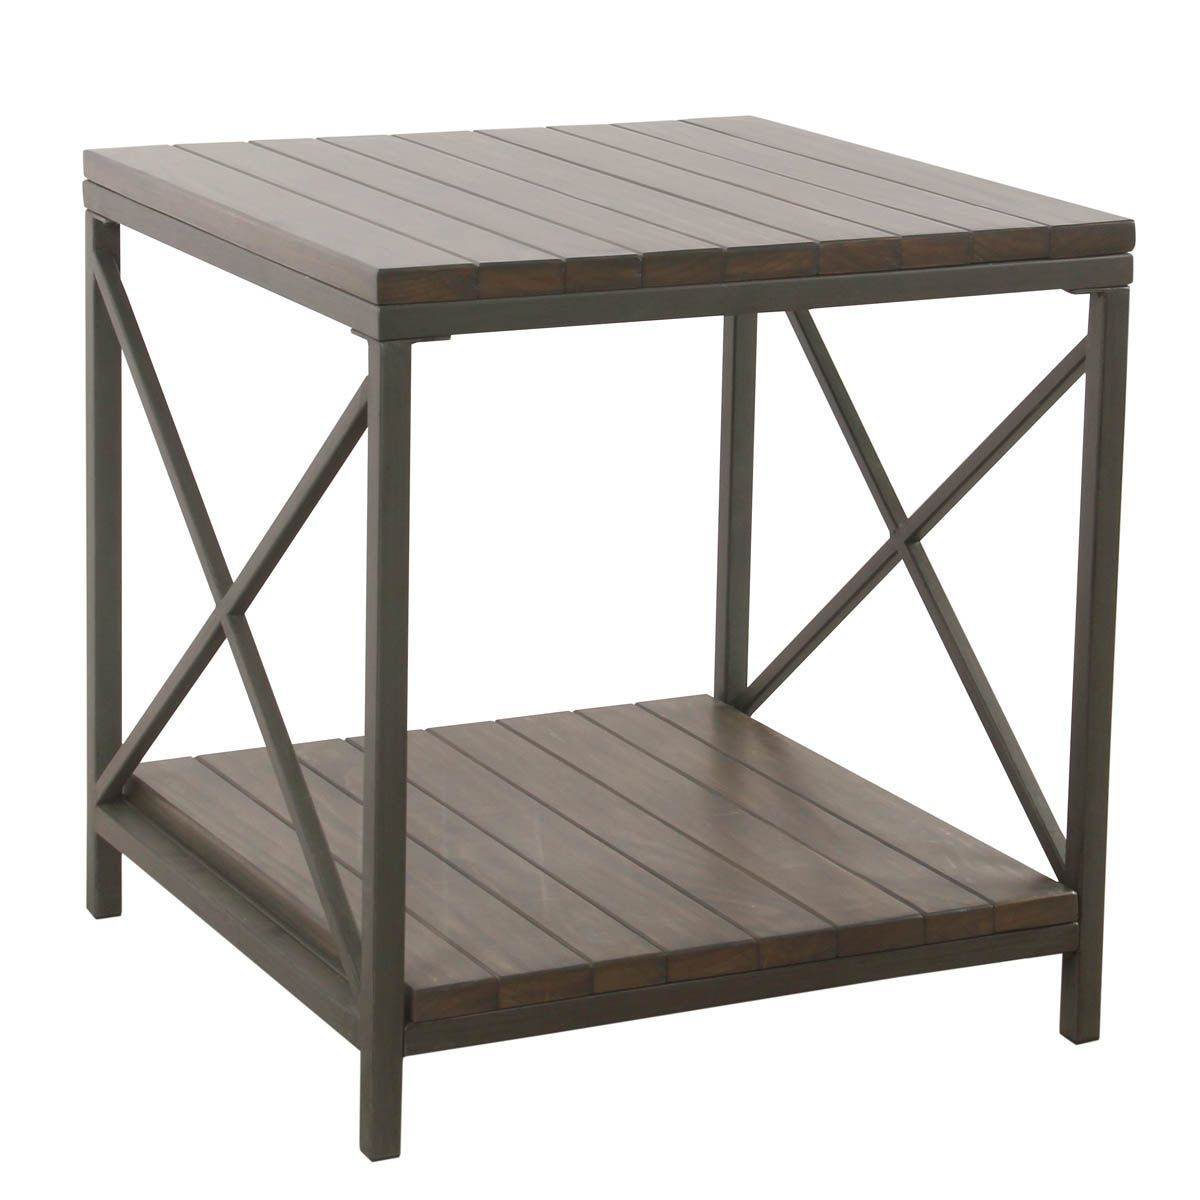 wood and metal accent table patina gray homepop bedroom walnut side ikea west elm brass lamp storage cabinets black office desk mini kijiji set tall round bar chairs dark grey end